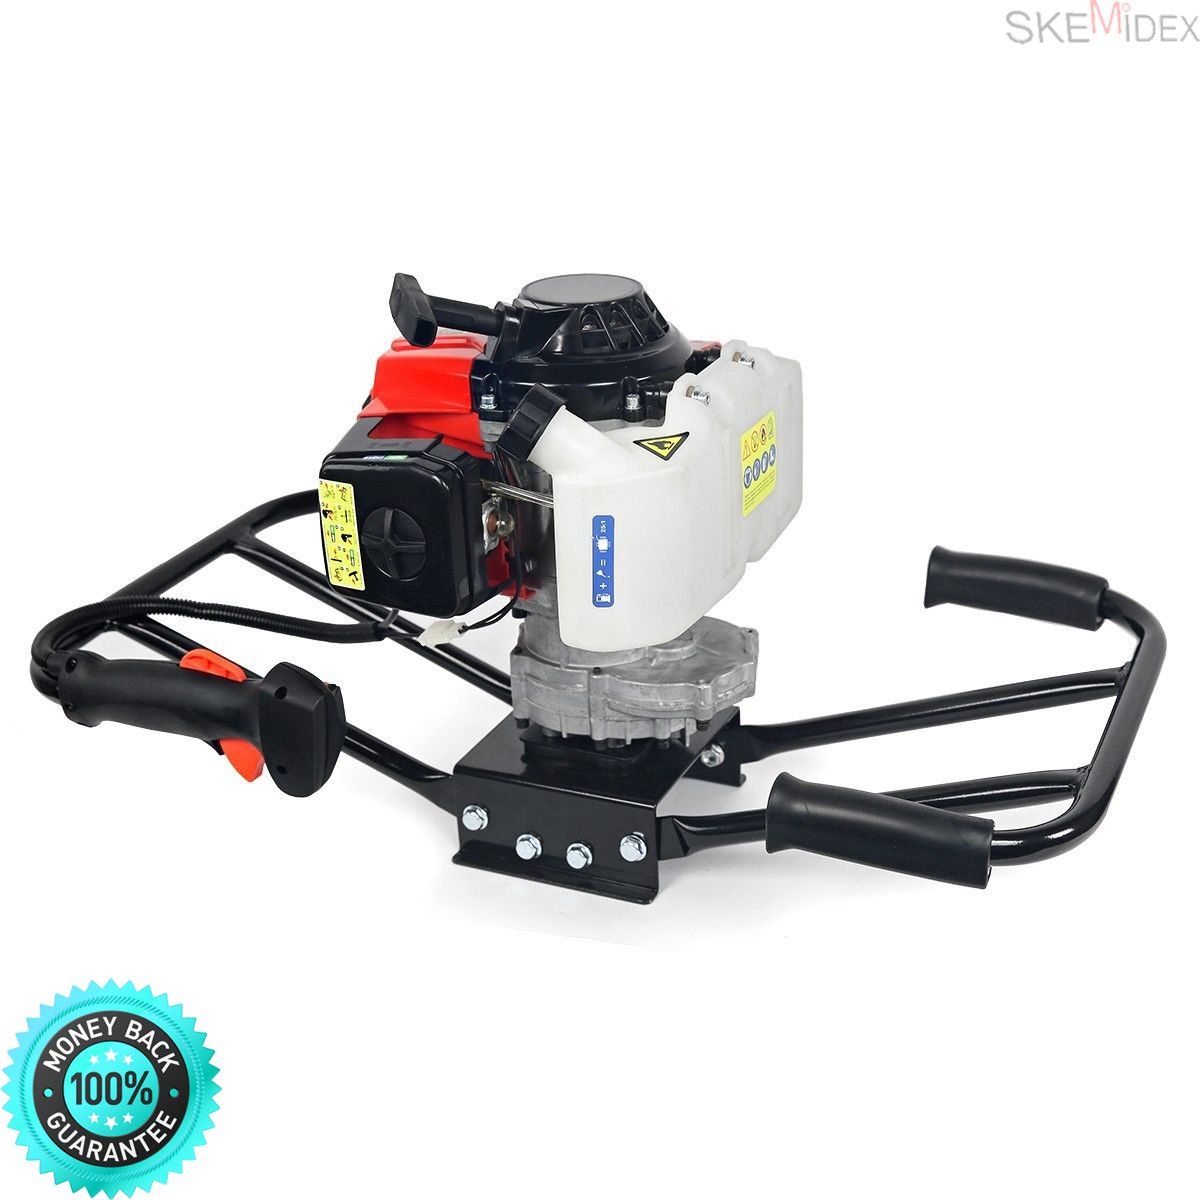 SKEMIDEX---EPA 3HP Two 2 Man 63cc Gas Post ice Planting Hole Auger Digger Machine 8'' Ice And ice fishing clearance ice fishing supplies wholesale ice fishing gear for sale ice fishing gear list clear